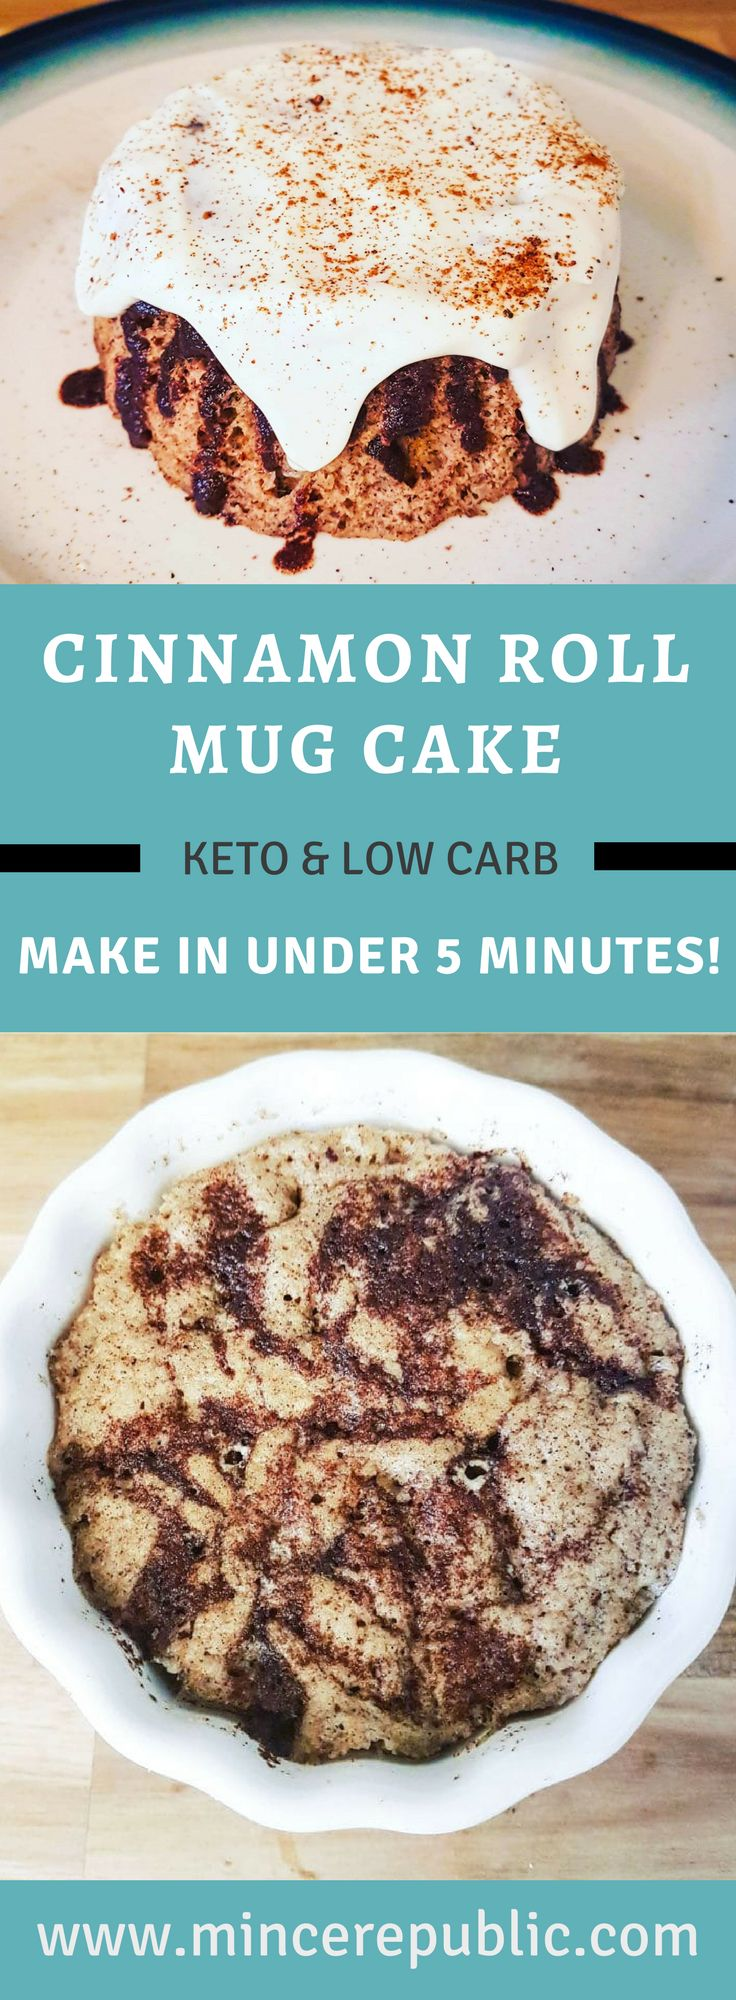 Cinnamon Roll Mug Cake in 2020 | Low carb mug cakes, Mug ...